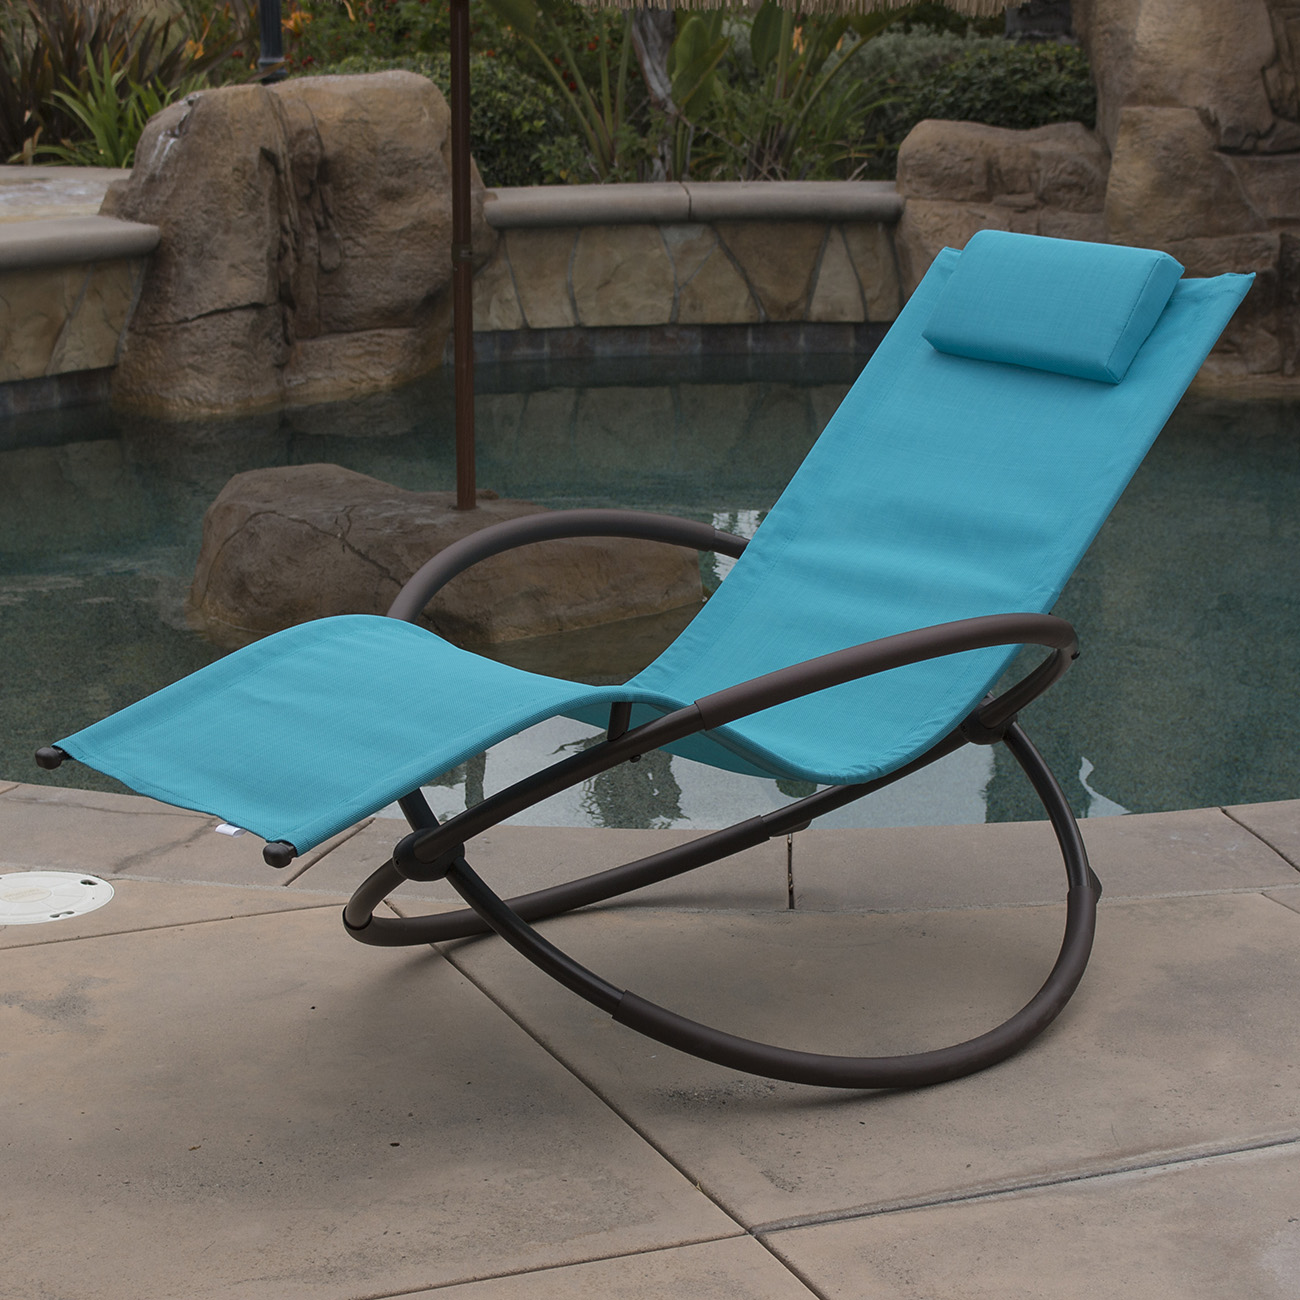 Indoor Zero Gravity Chair Orbit Zero Gravity Chair Lounge Beach Pool Outdoor